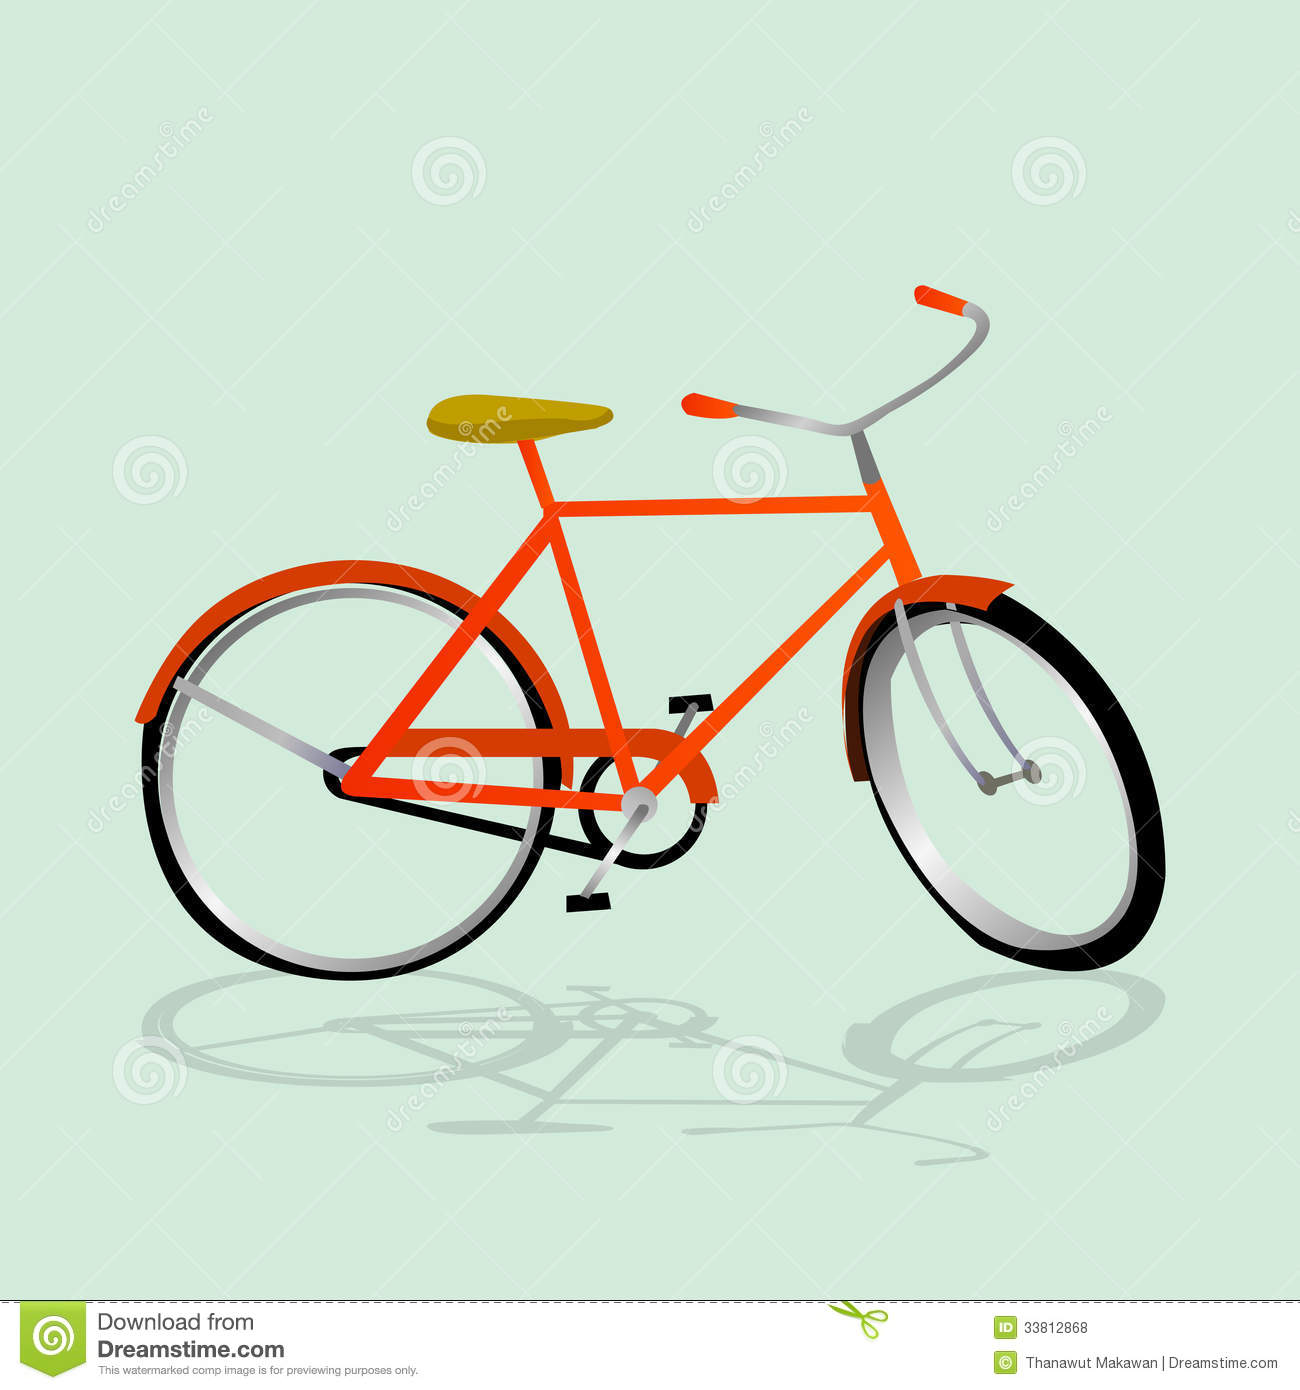 simple bike art 1080p - photo #14